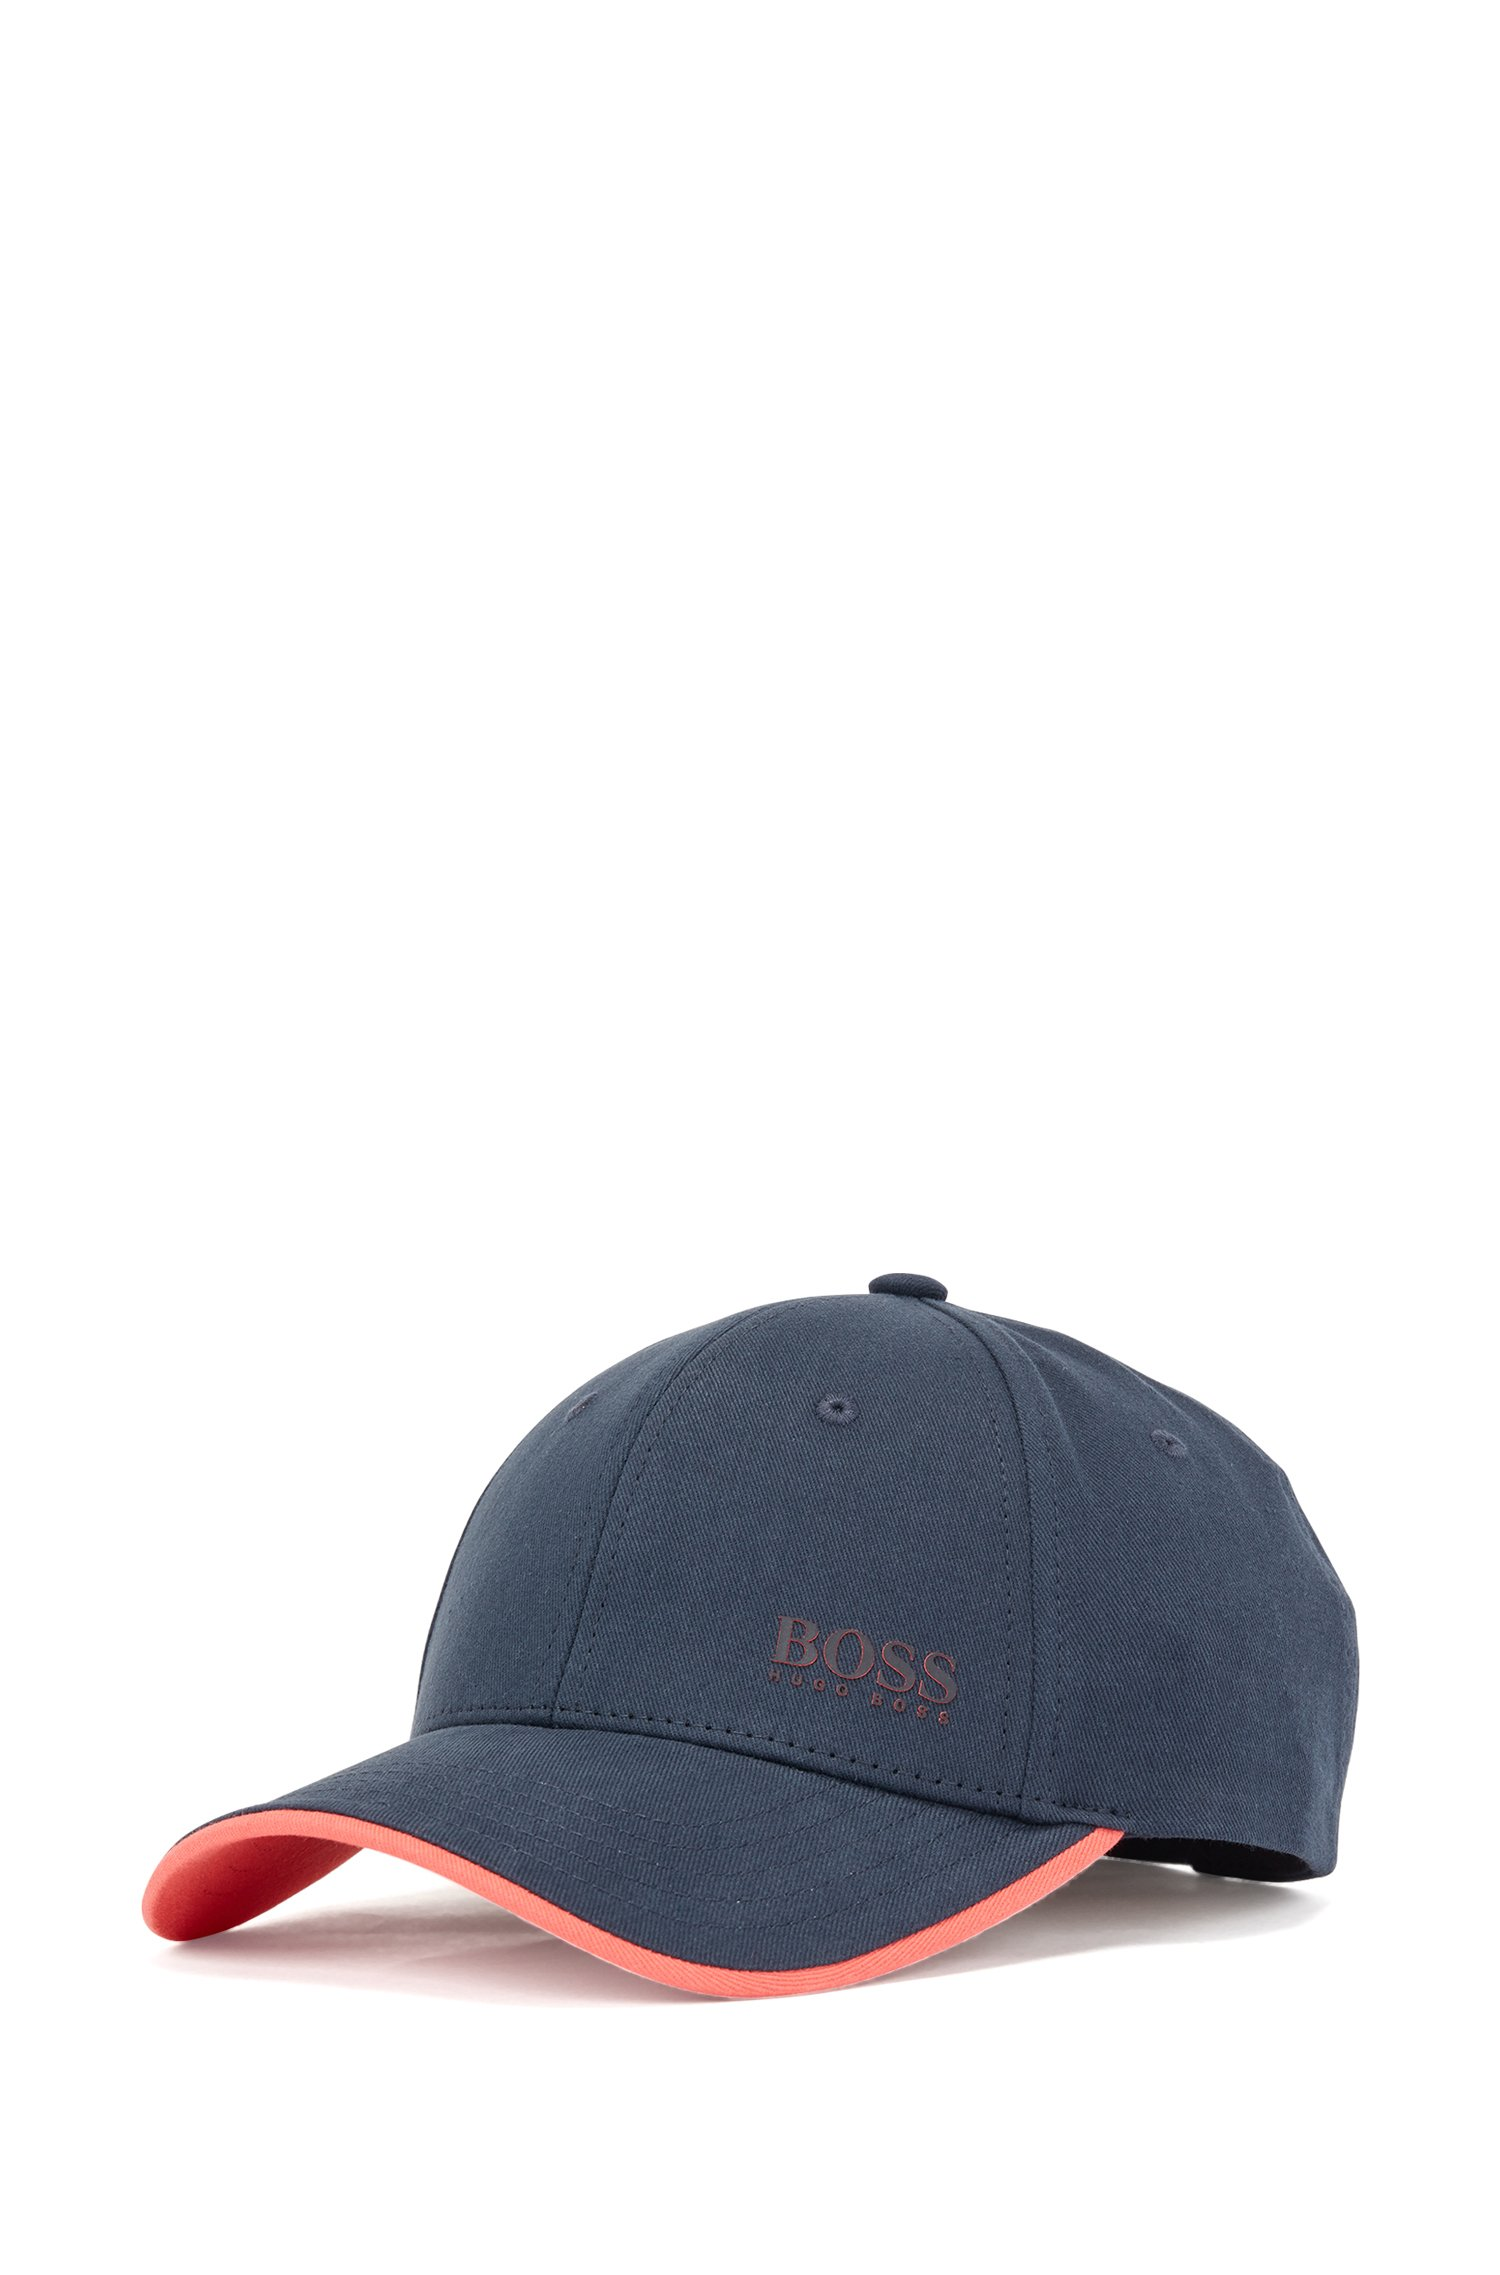 Logo-print cap in cotton twill with contrast accents, Dark Blue